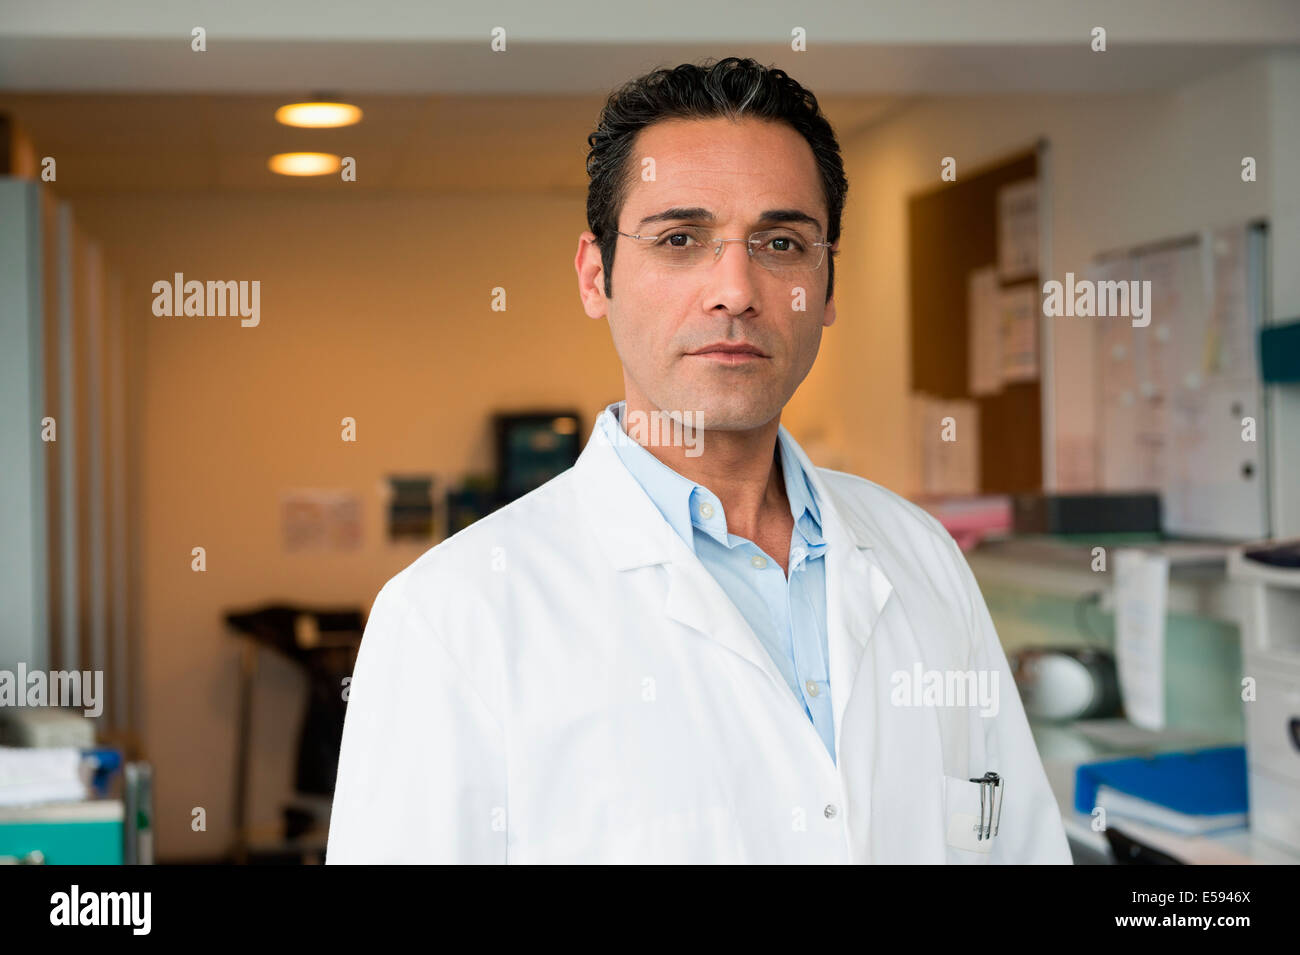 Portrait of a male doctor in hospital Photo Stock